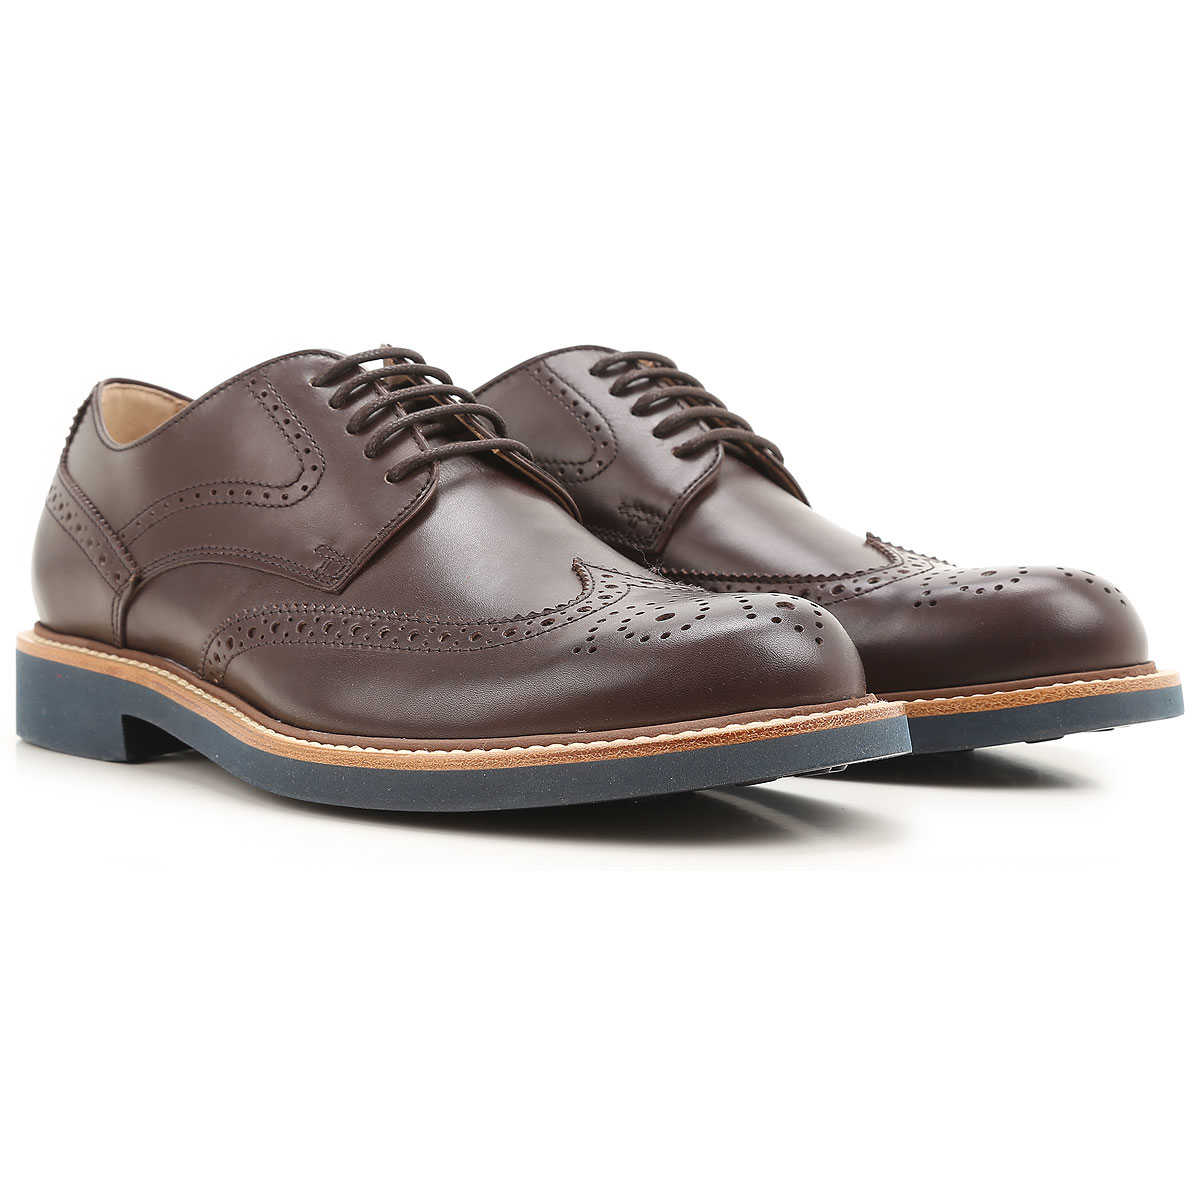 Tods Brogue Shoes On Sale